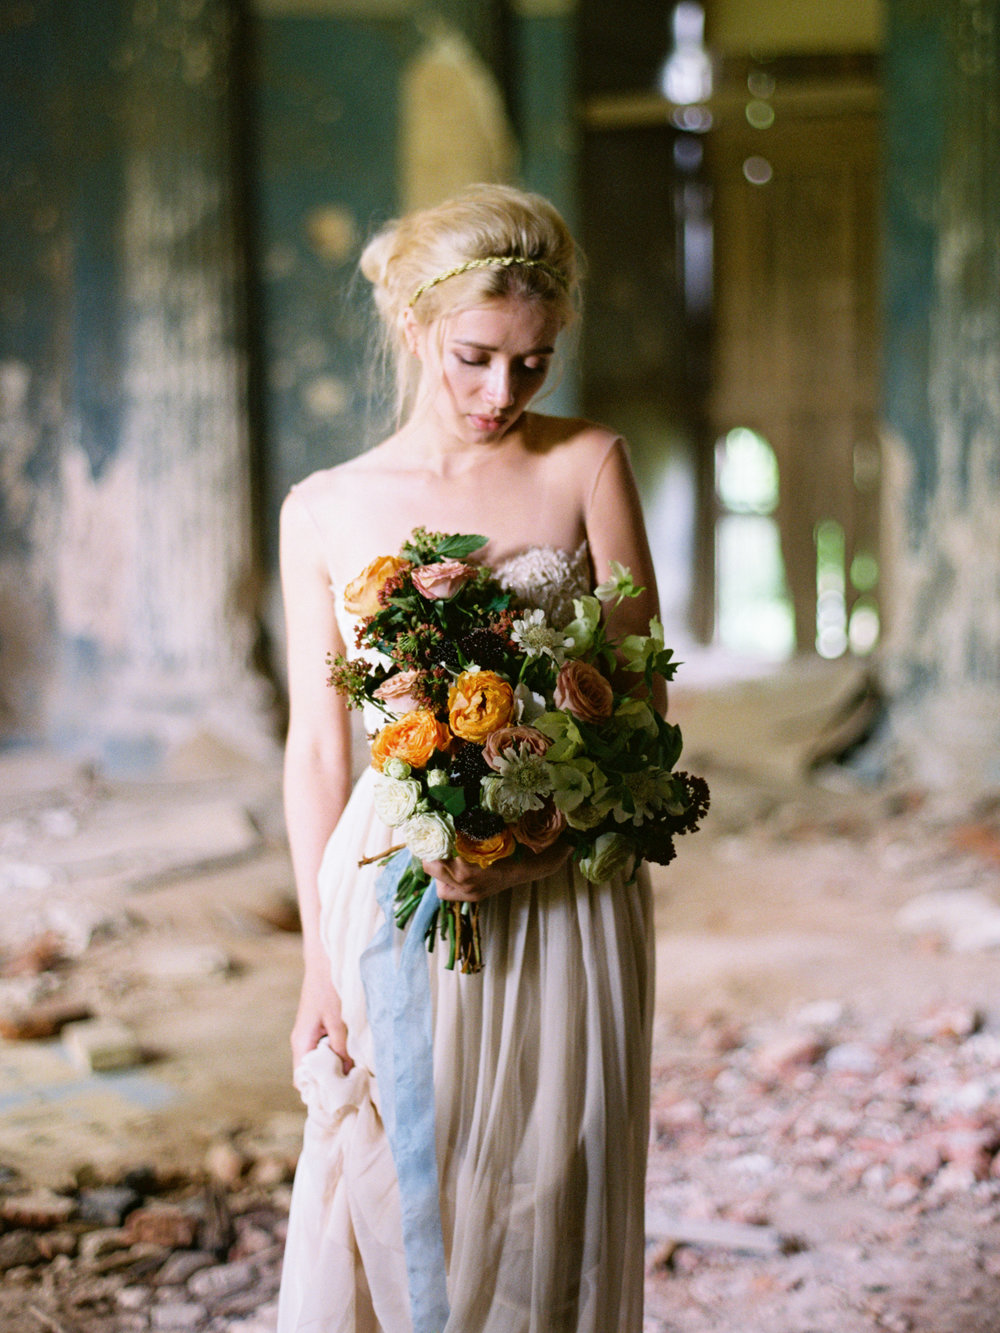 wedding-styled-shoot-russia-inspiration-elena-pavlova-photography-metamorphoses-orpheus-eurydice (4).jpg